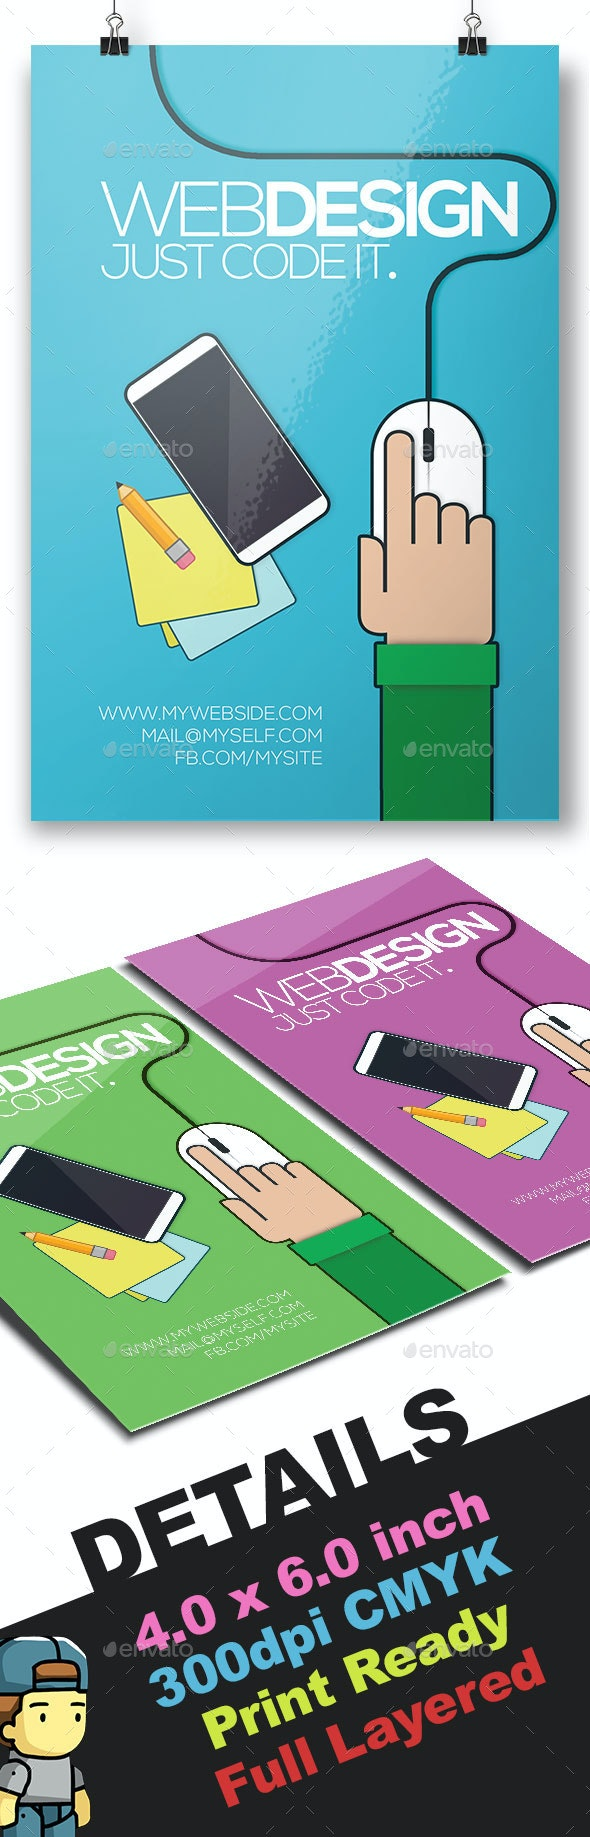 The Webdesign Business Flyer Template - Corporate Flyers